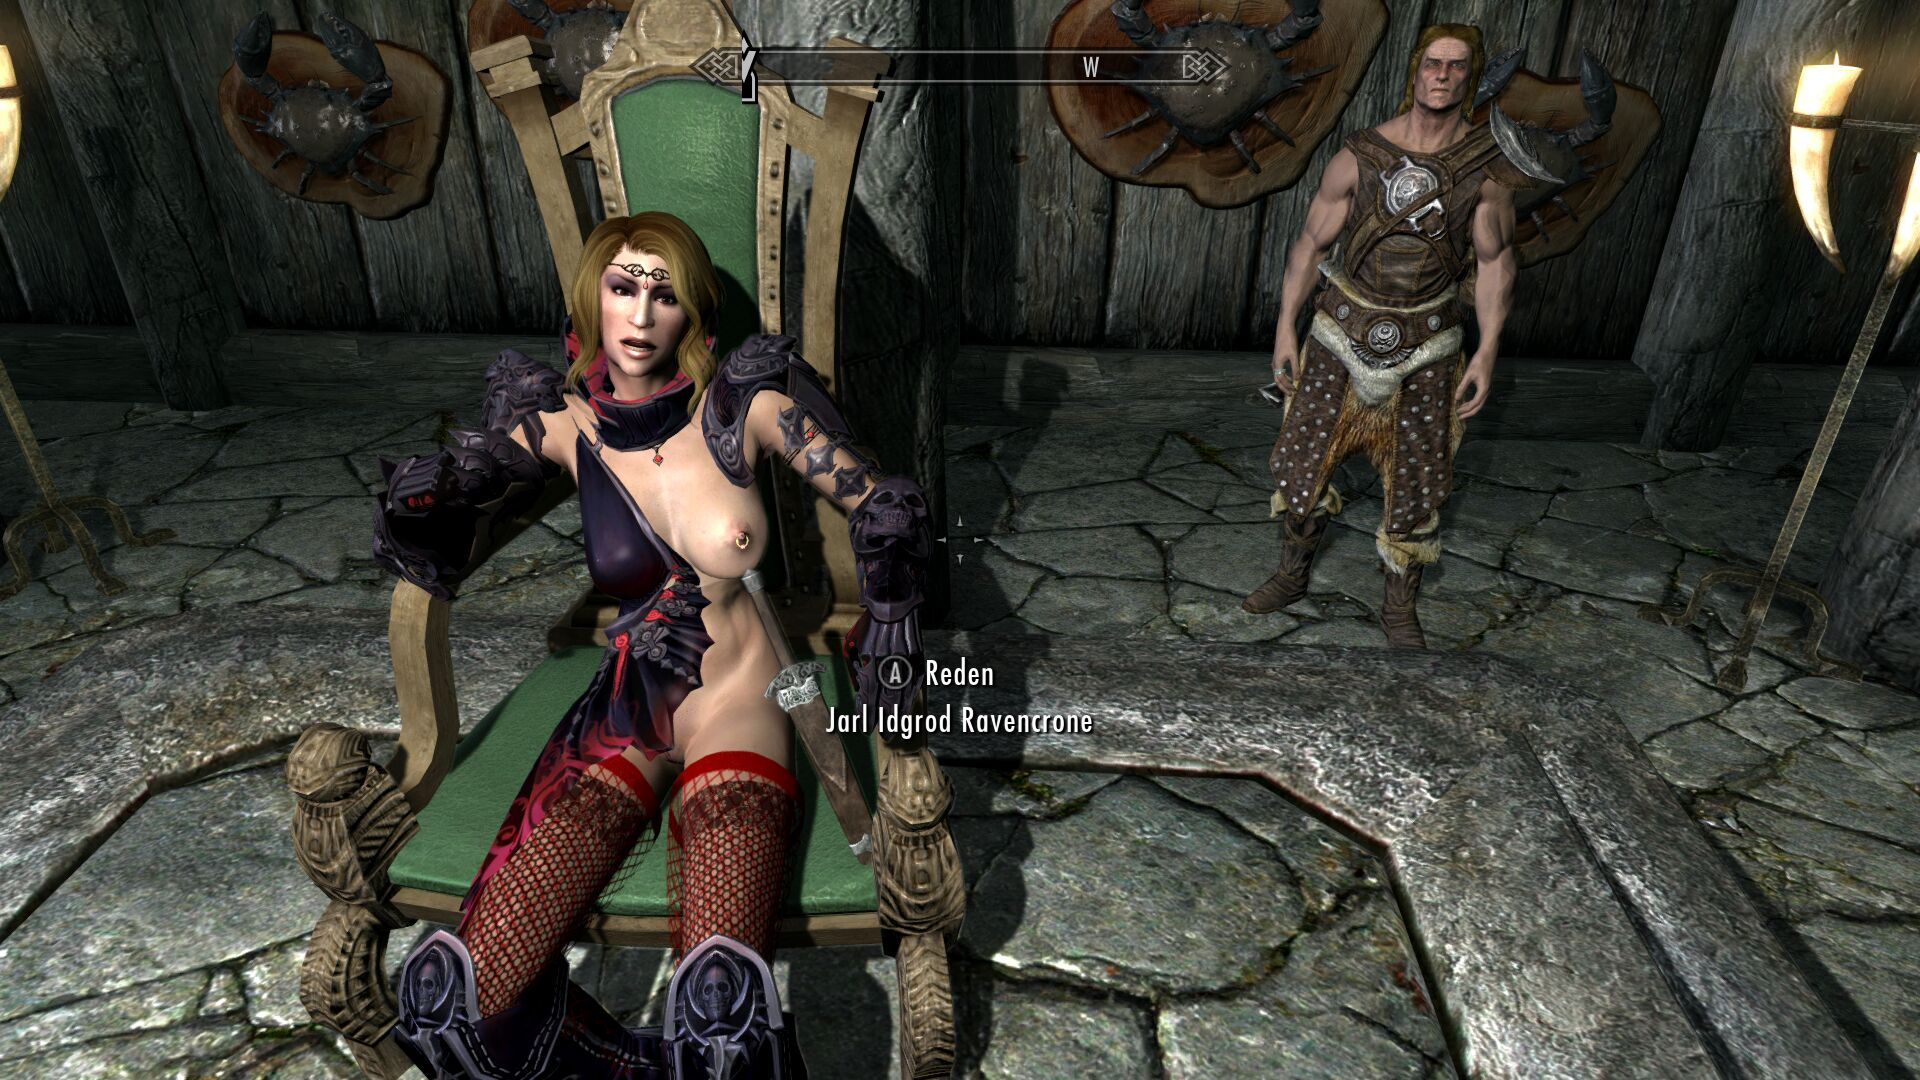 Npc Clothes Changer And Maintainer Skyrim Mods